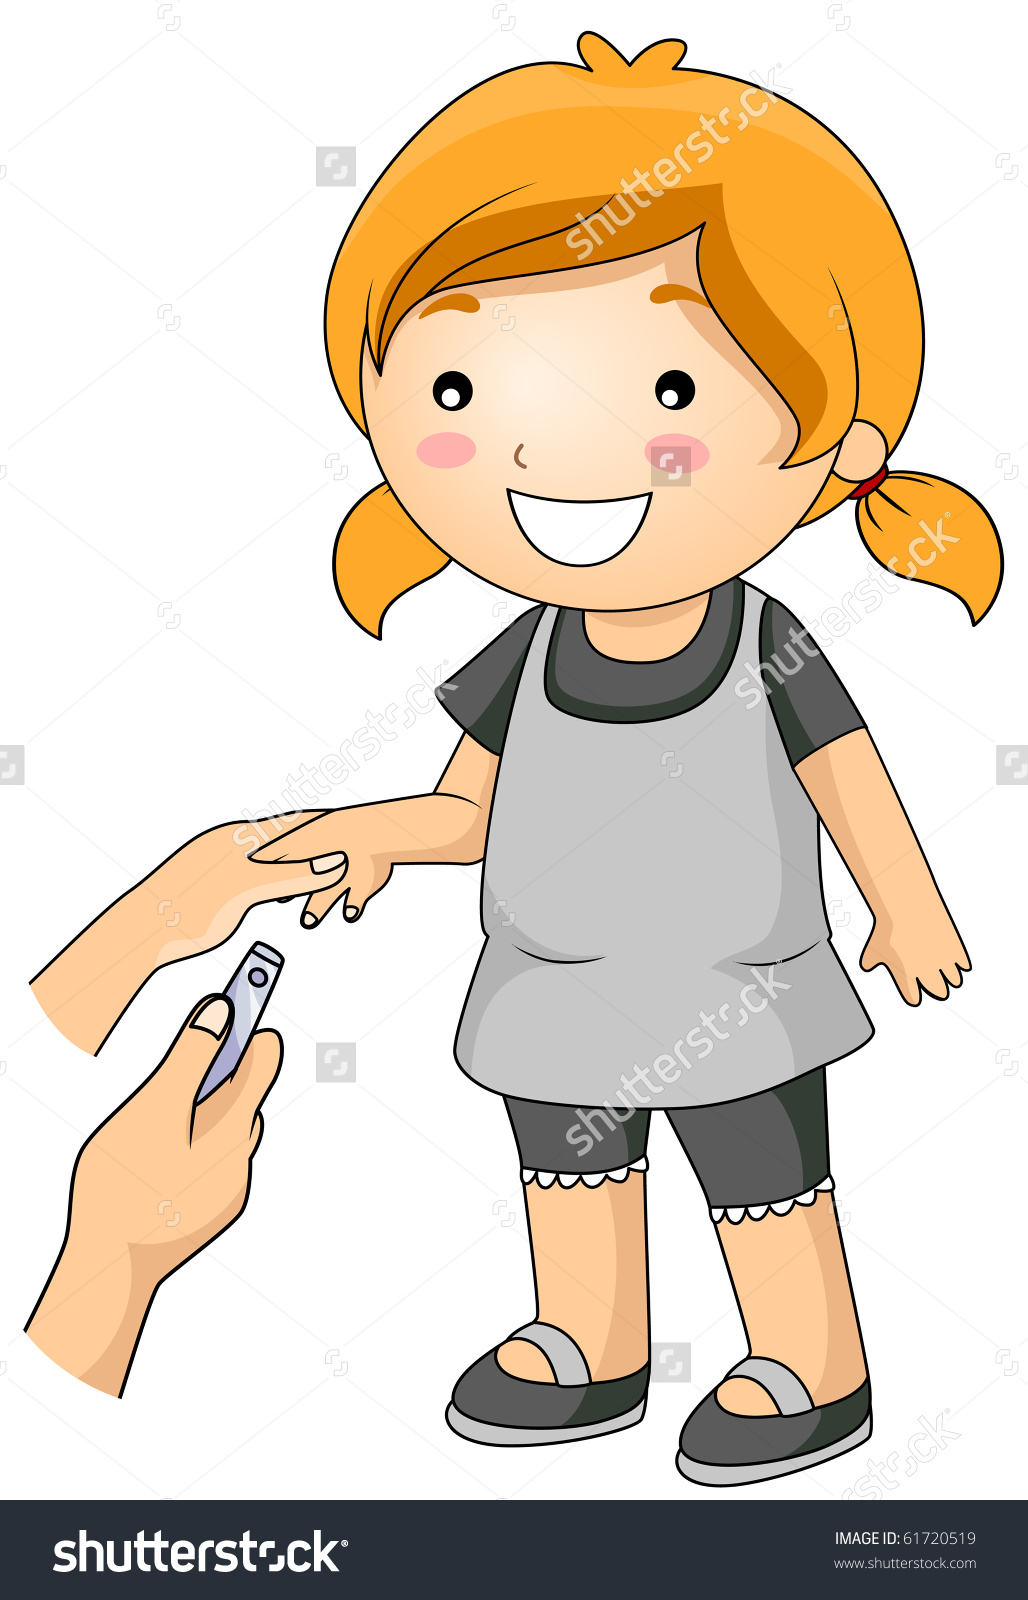 Cut your nails clipart 2 » Clipart Station.